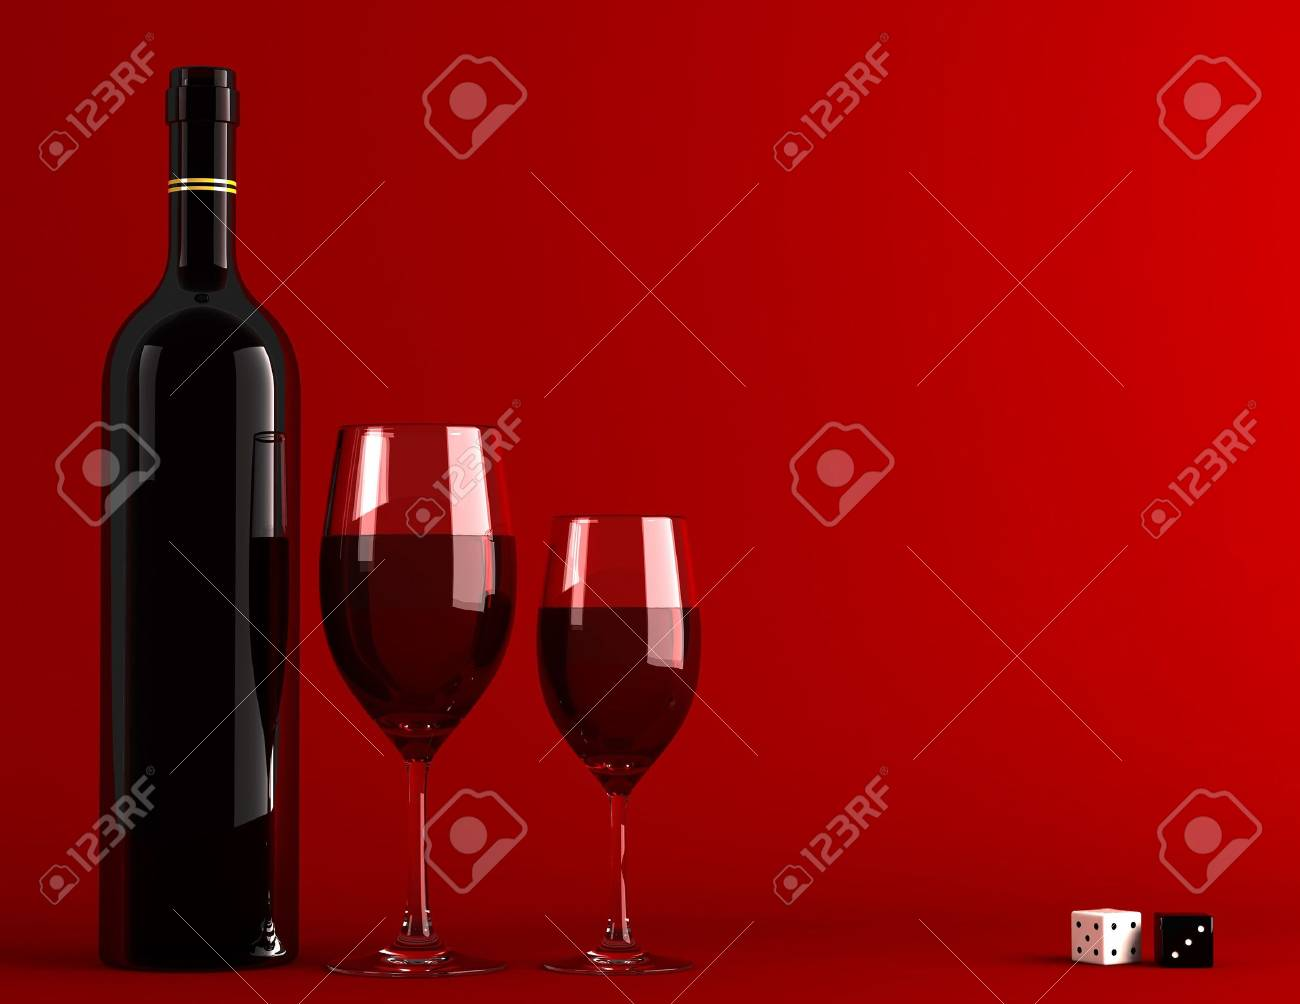 Bottle and glass of wine Stock Photo - 3711225